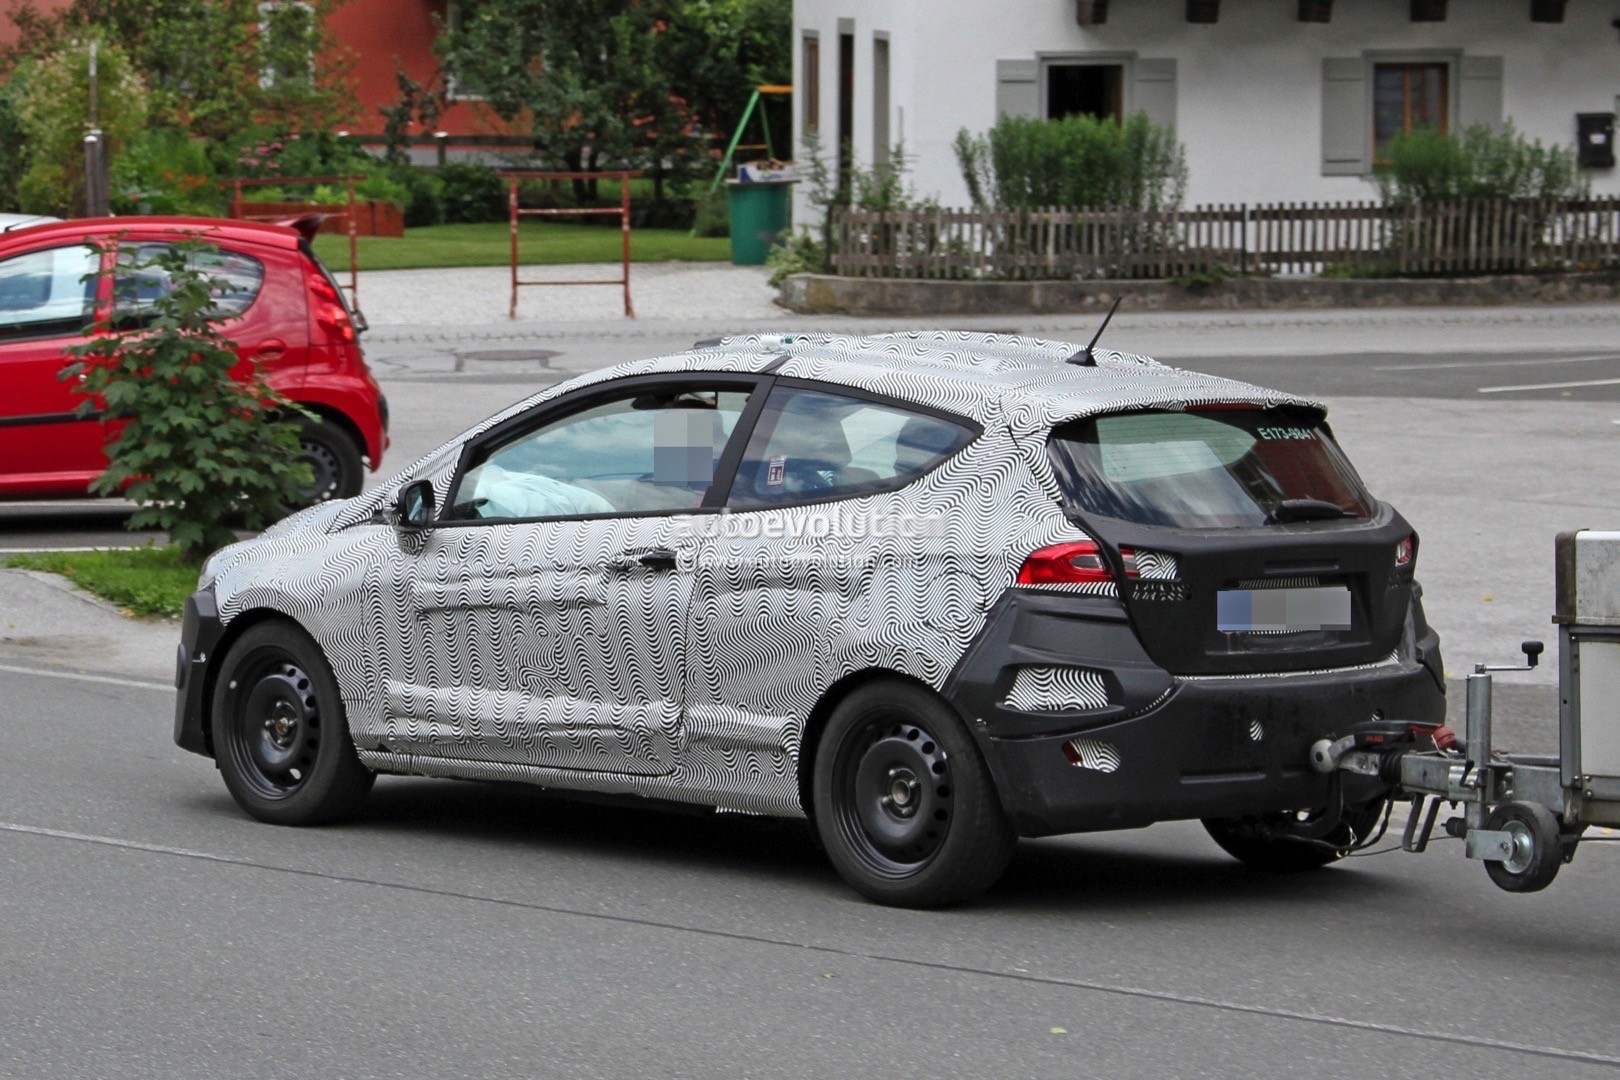 Focus St Towing >> 2018 Ford Fiesta Mk7 Spied Towing Its Little Heart Out - autoevolution